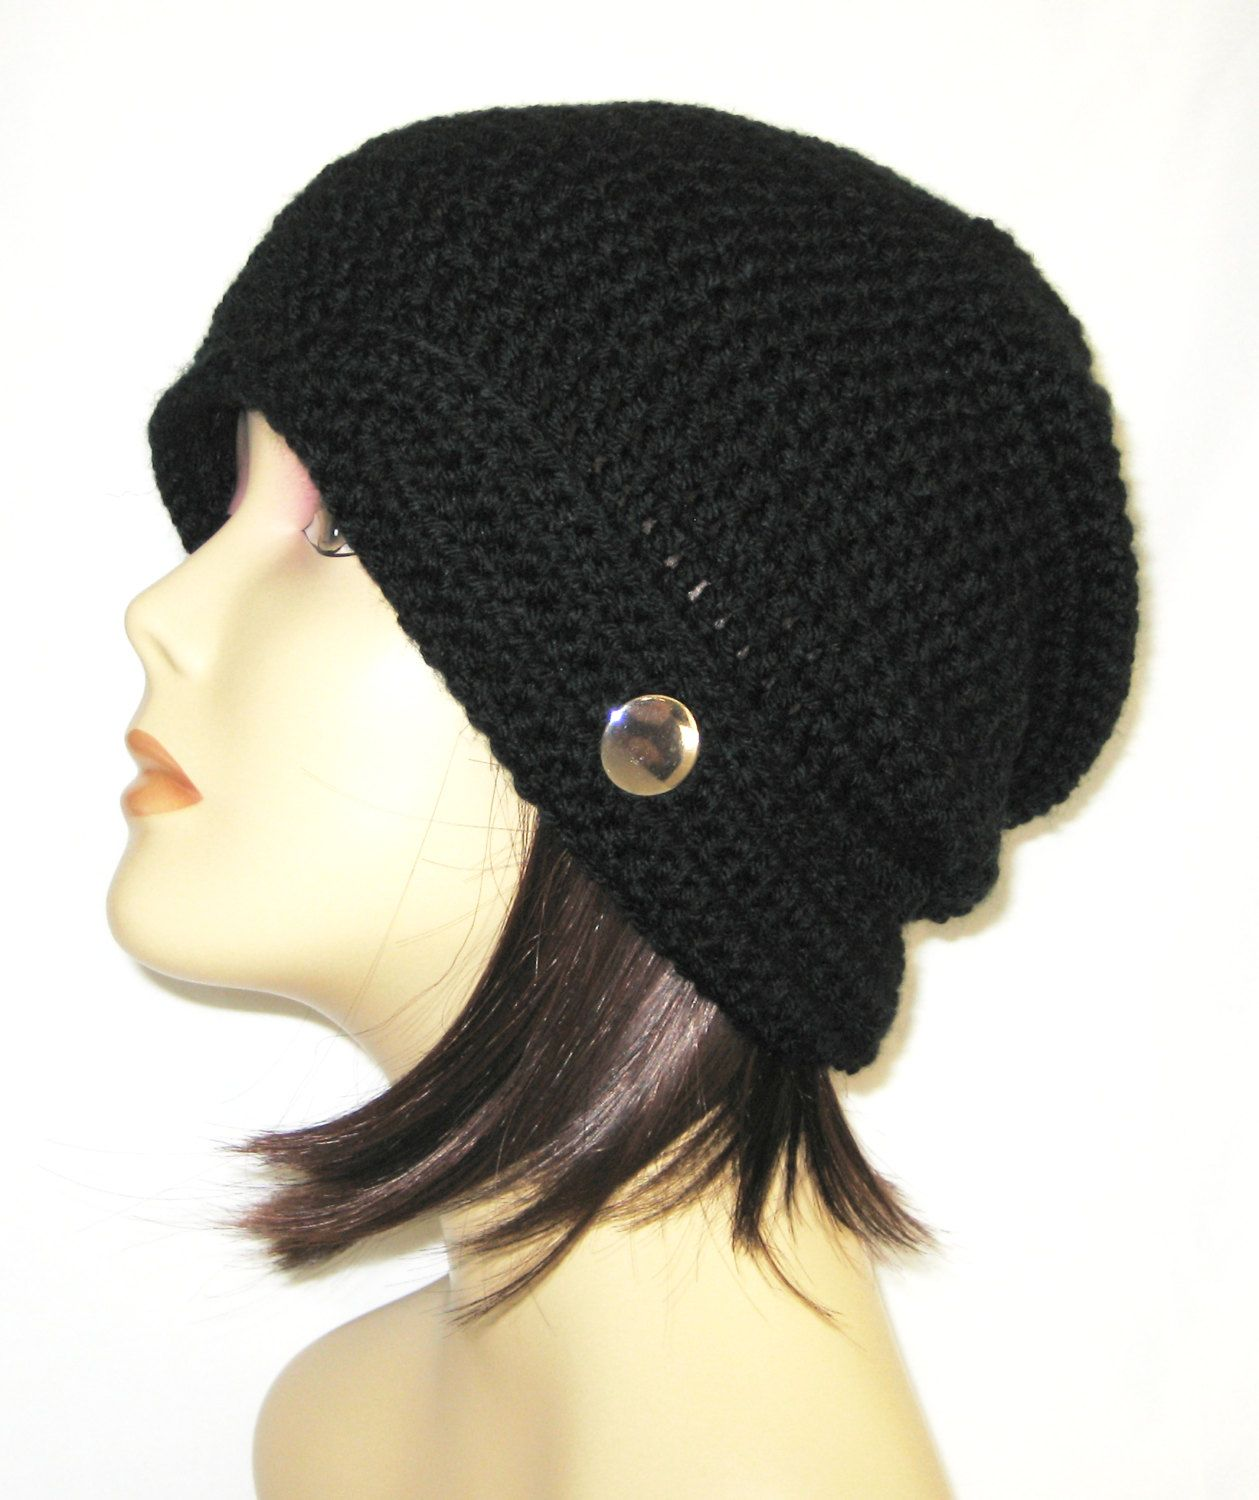 "flipped side brim slouch,beanie,hat,cap,decorated with button,color black,made to fit teens & adults 21-23"" by Jeniebugs on Etsy"